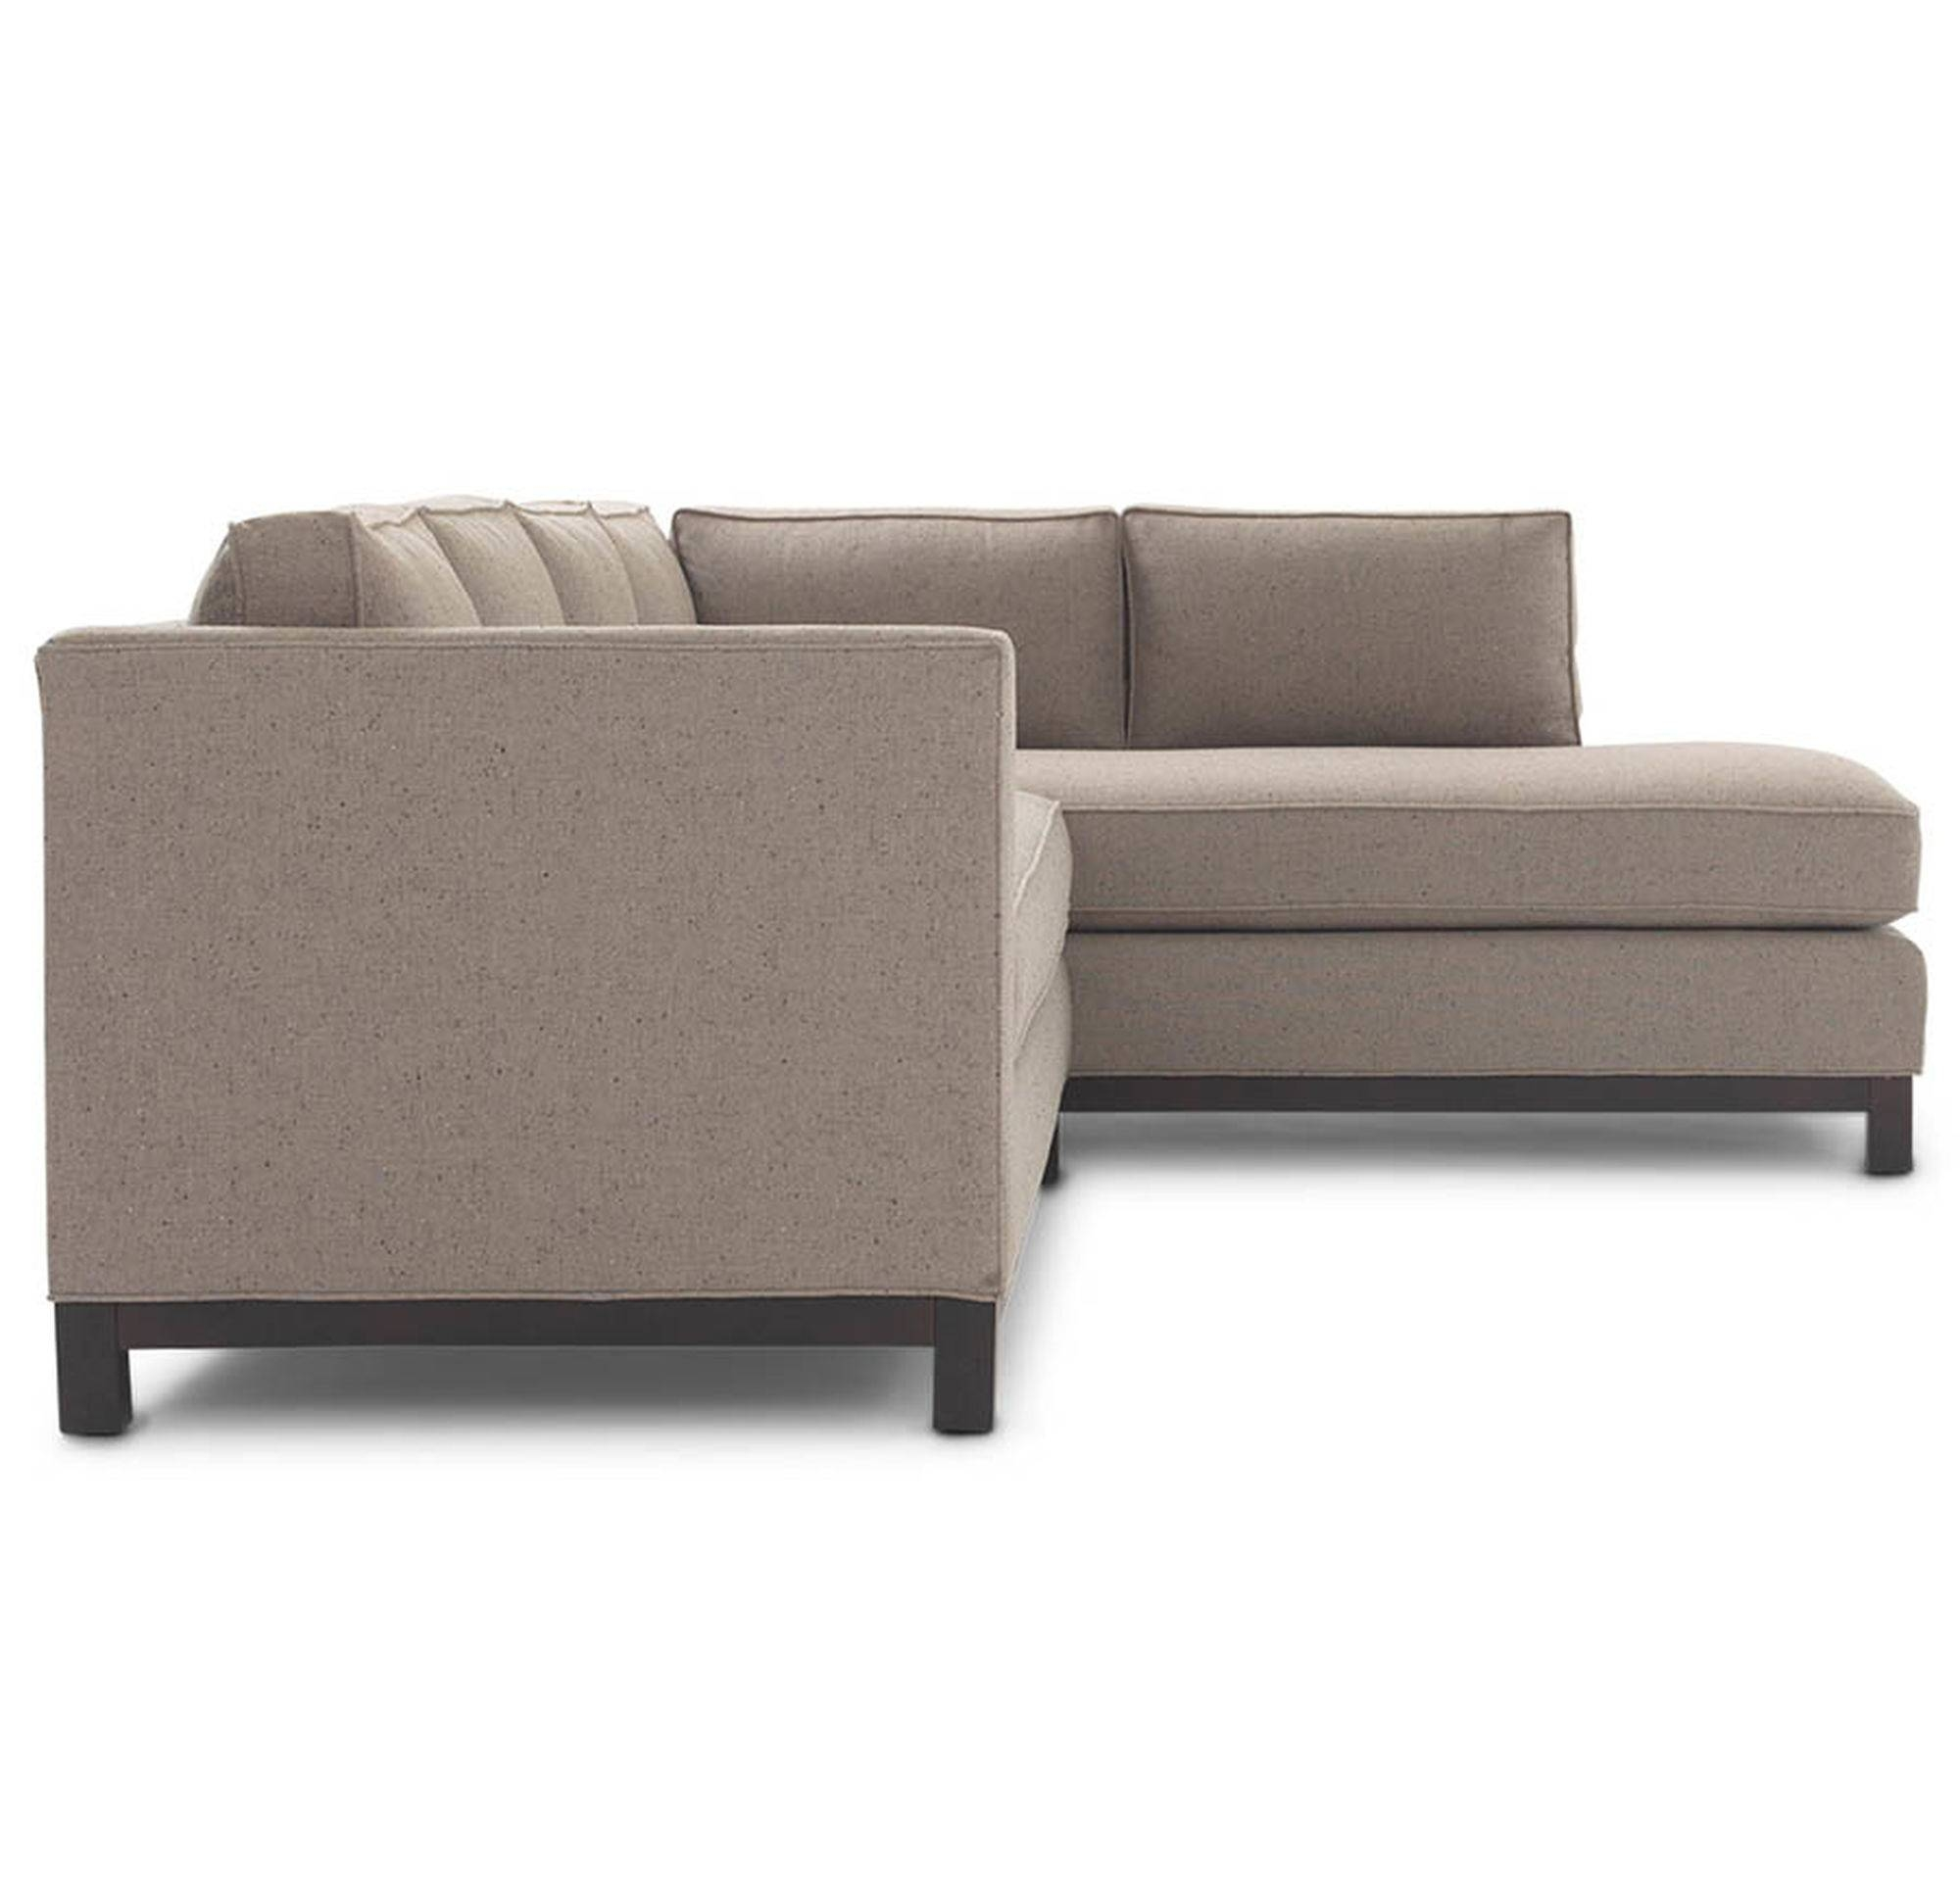 Best Mitchell Gold Clifton Sectional Sofa 73 For Your Condo with Mitchell Gold Clifton Sectional Sofas (Image 2 of 15)